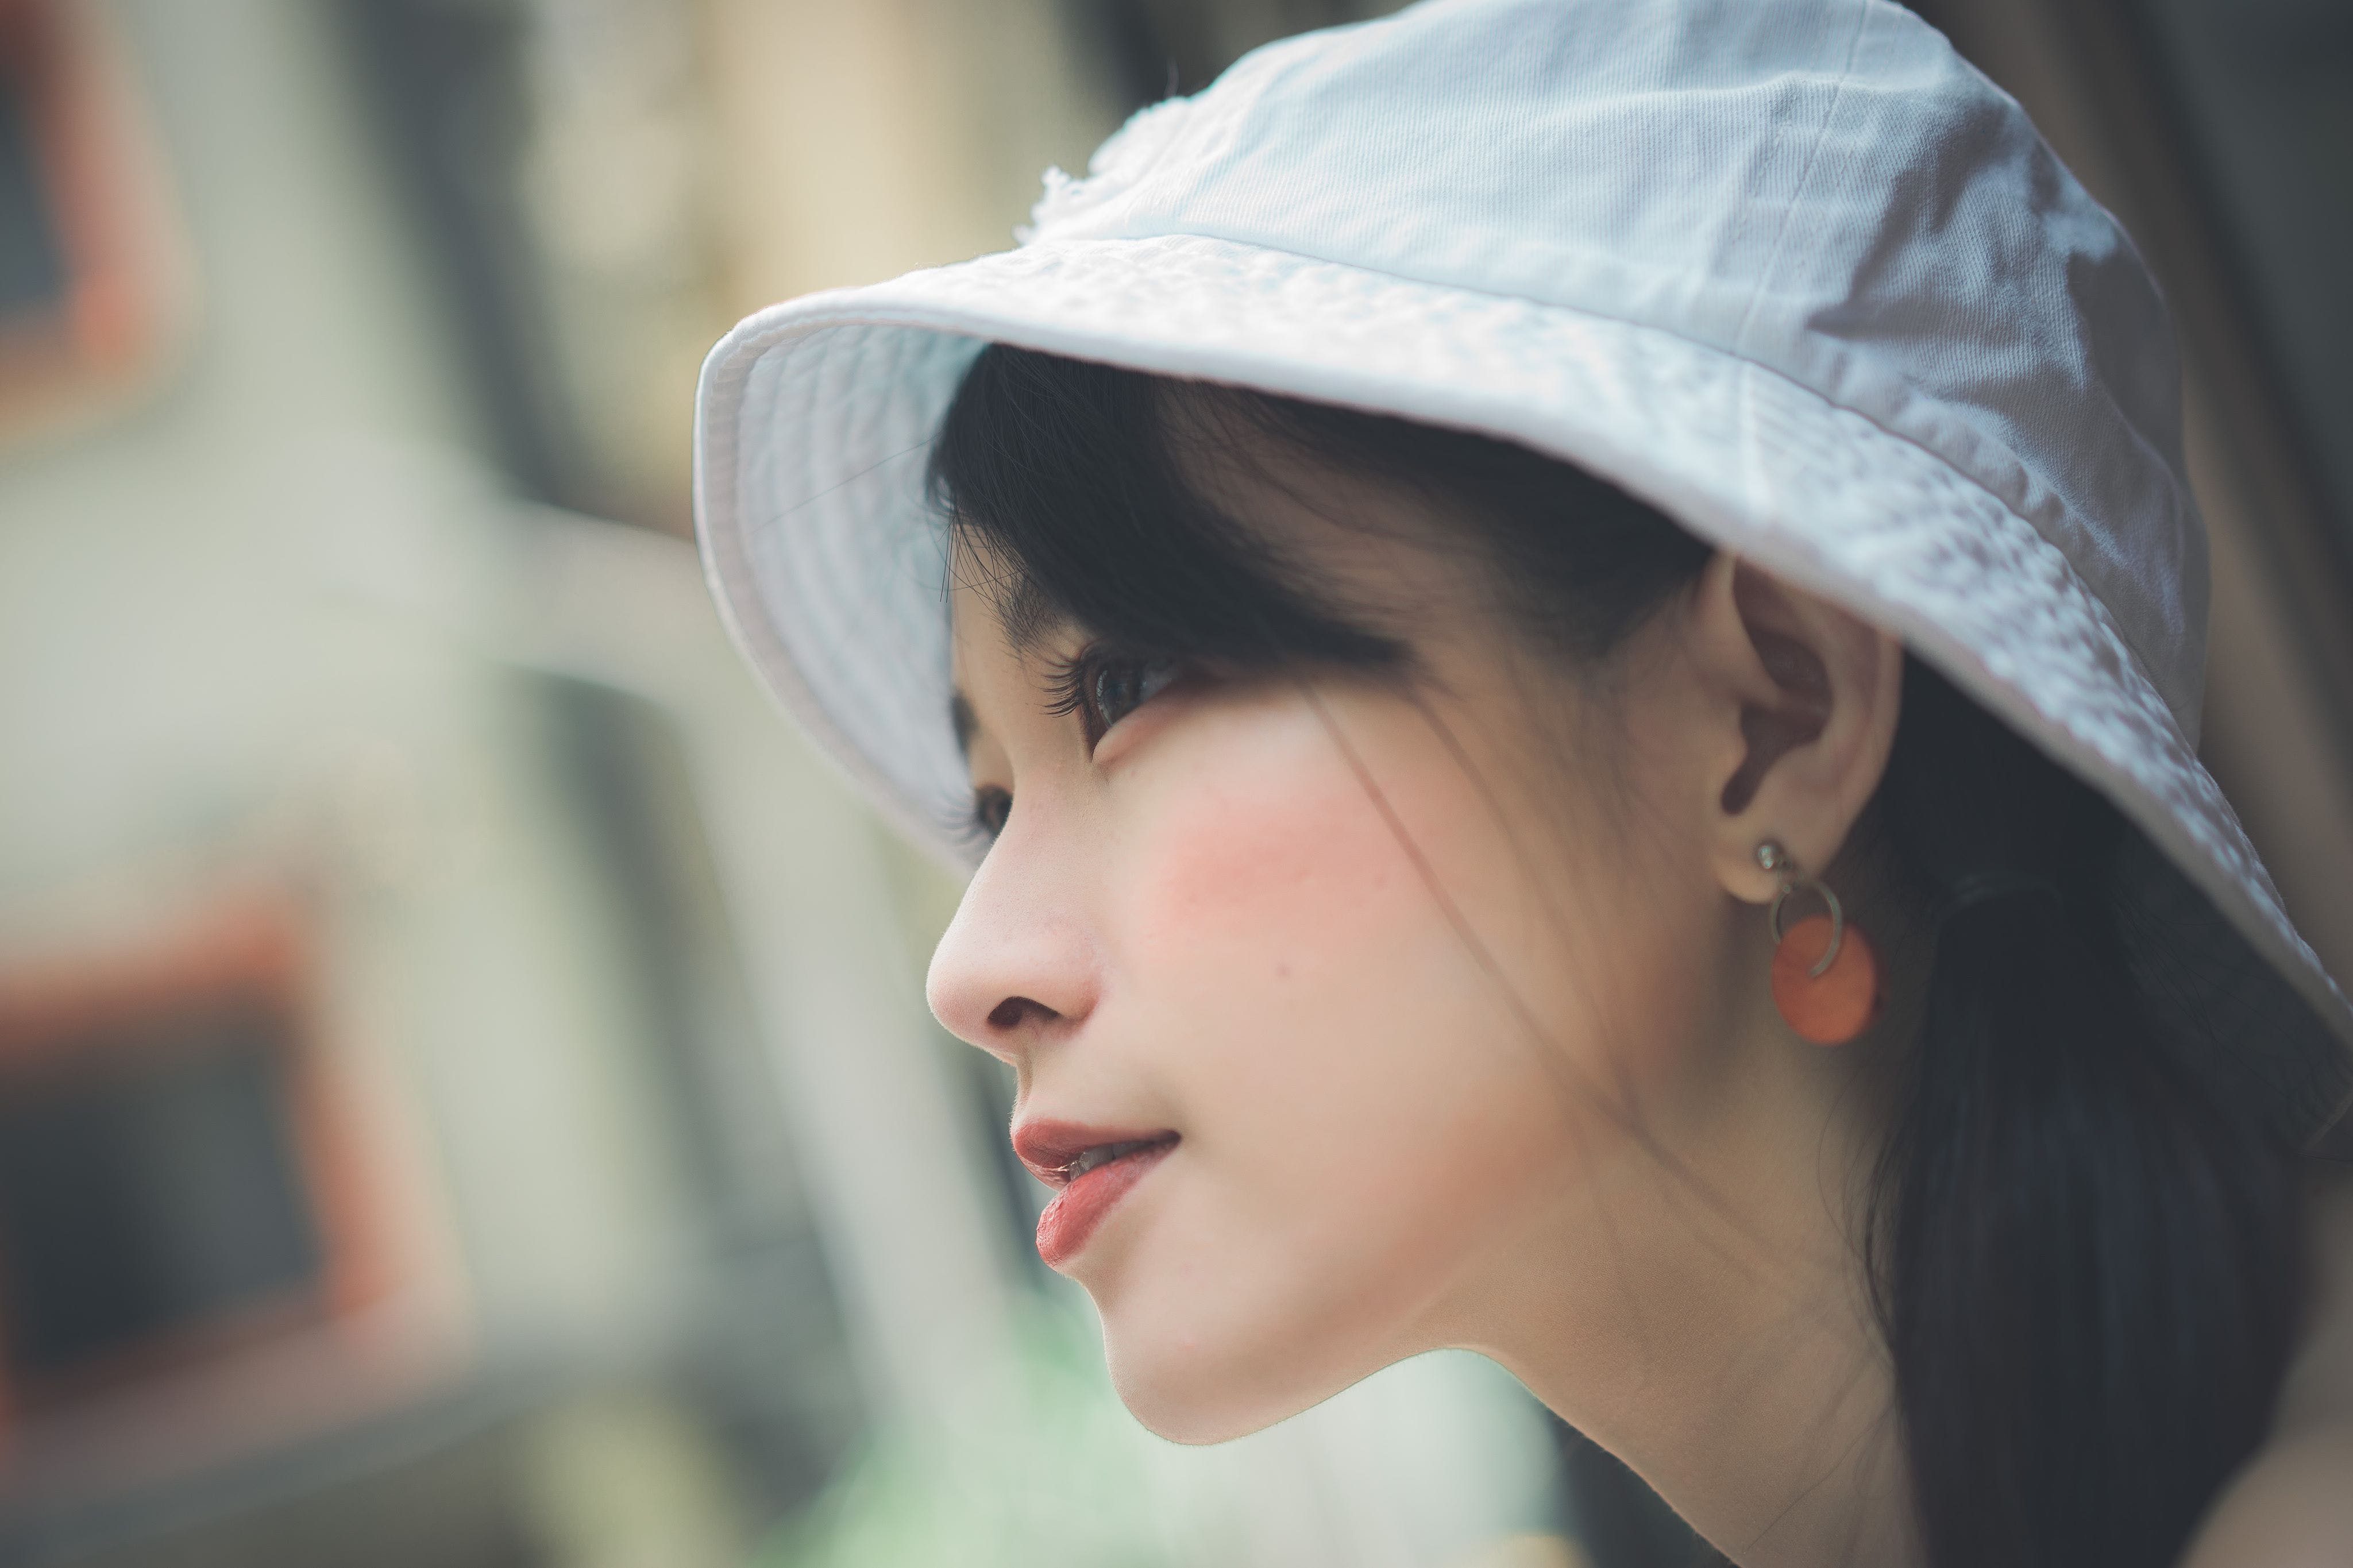 Selective Focus Photo of Woman Wearing White Cap